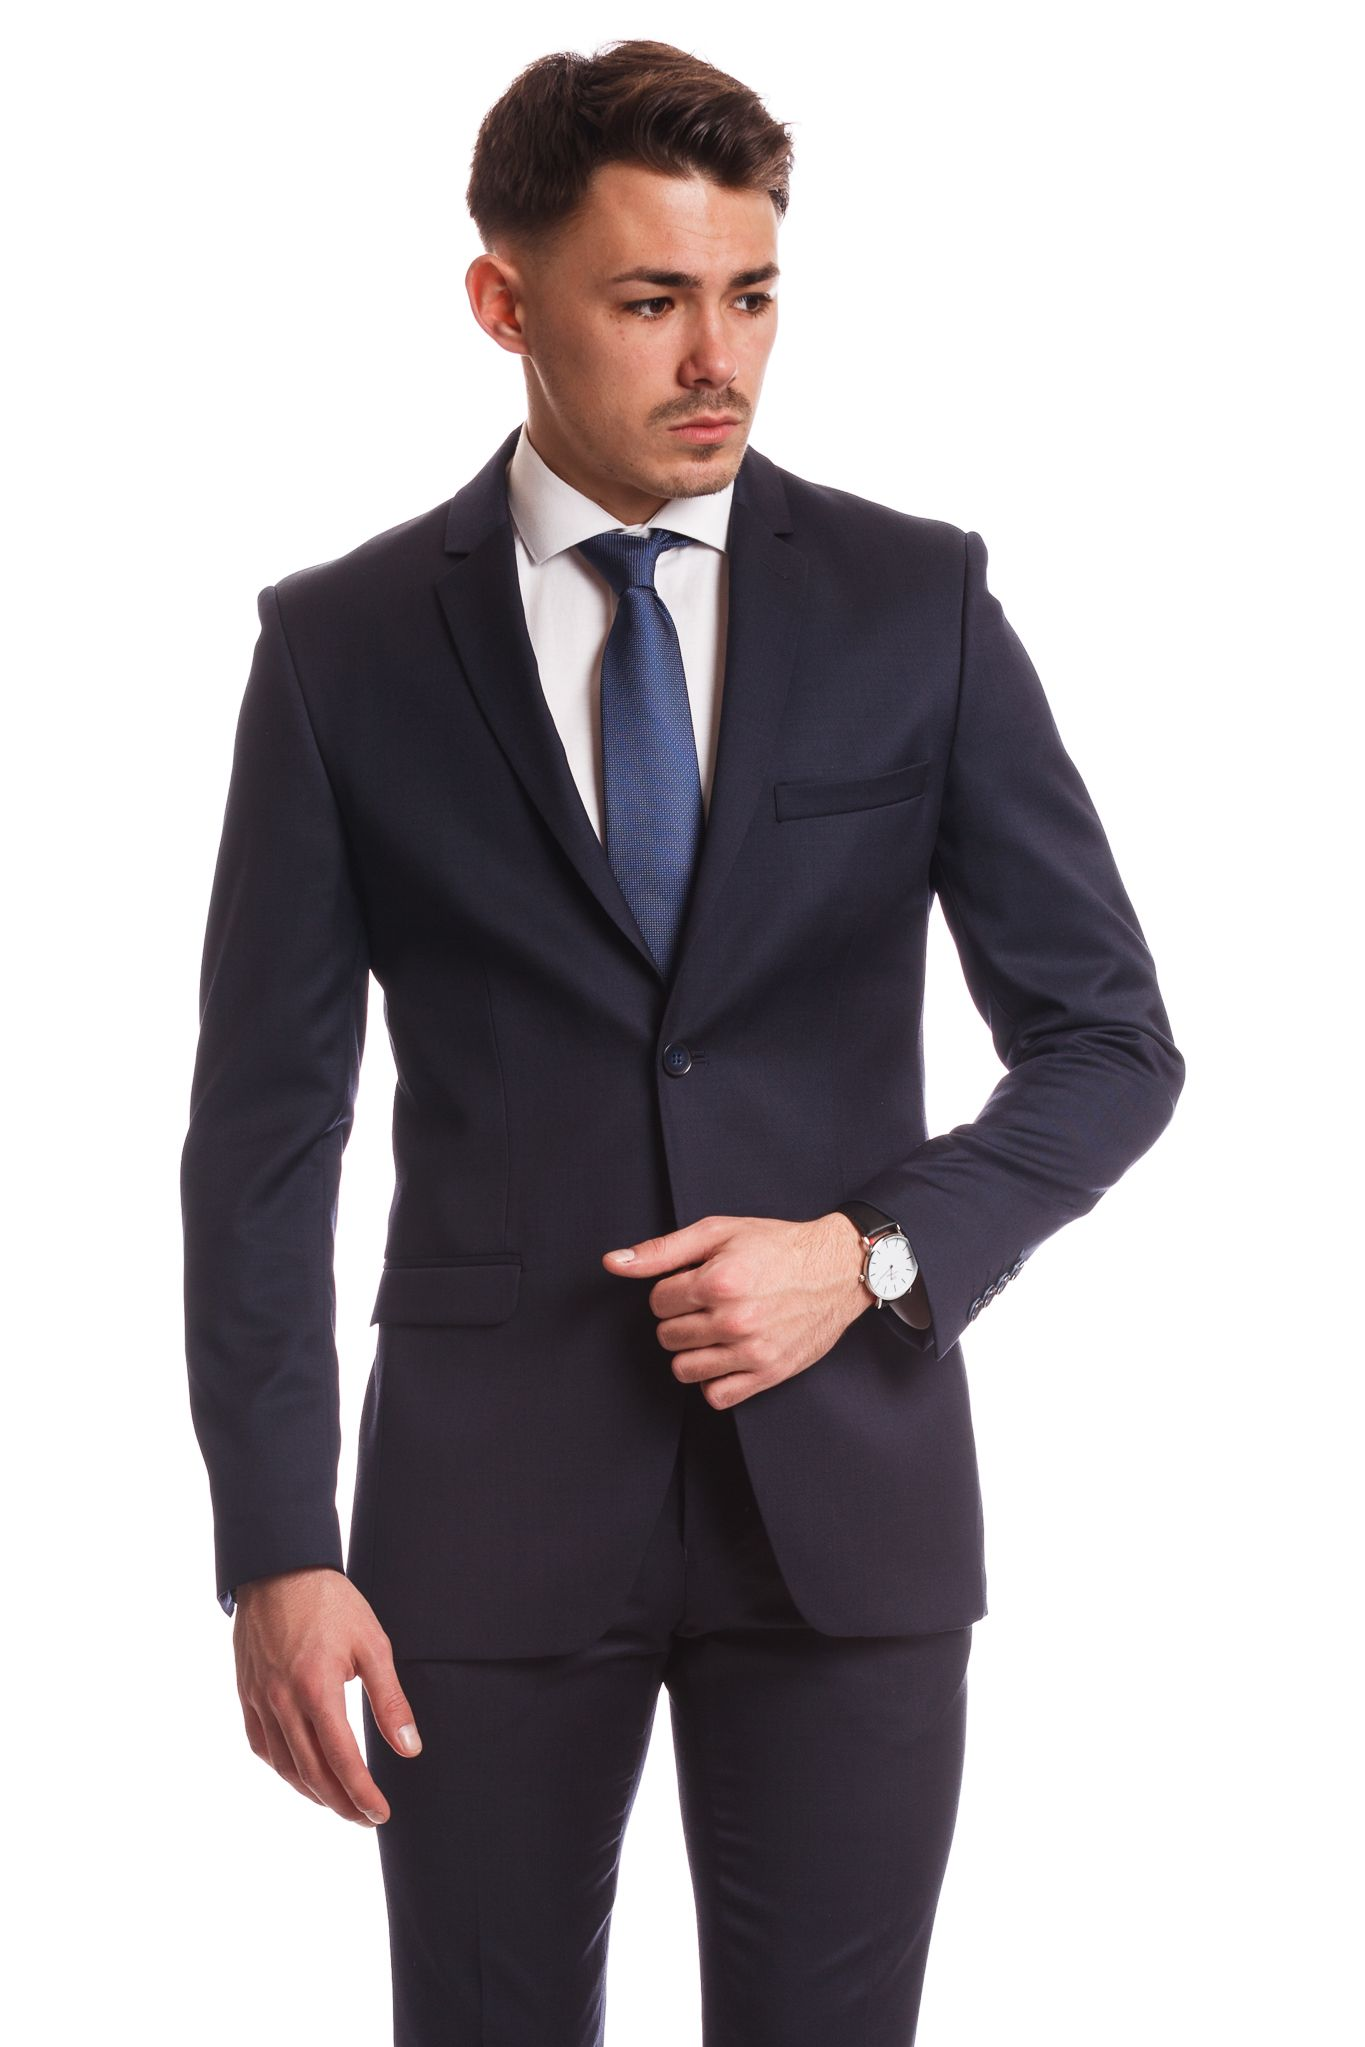 ca6e85abb6 Sötétkék Slim Fit Öltöny | Elite Fashion öltönyház | Elite Fashion ...